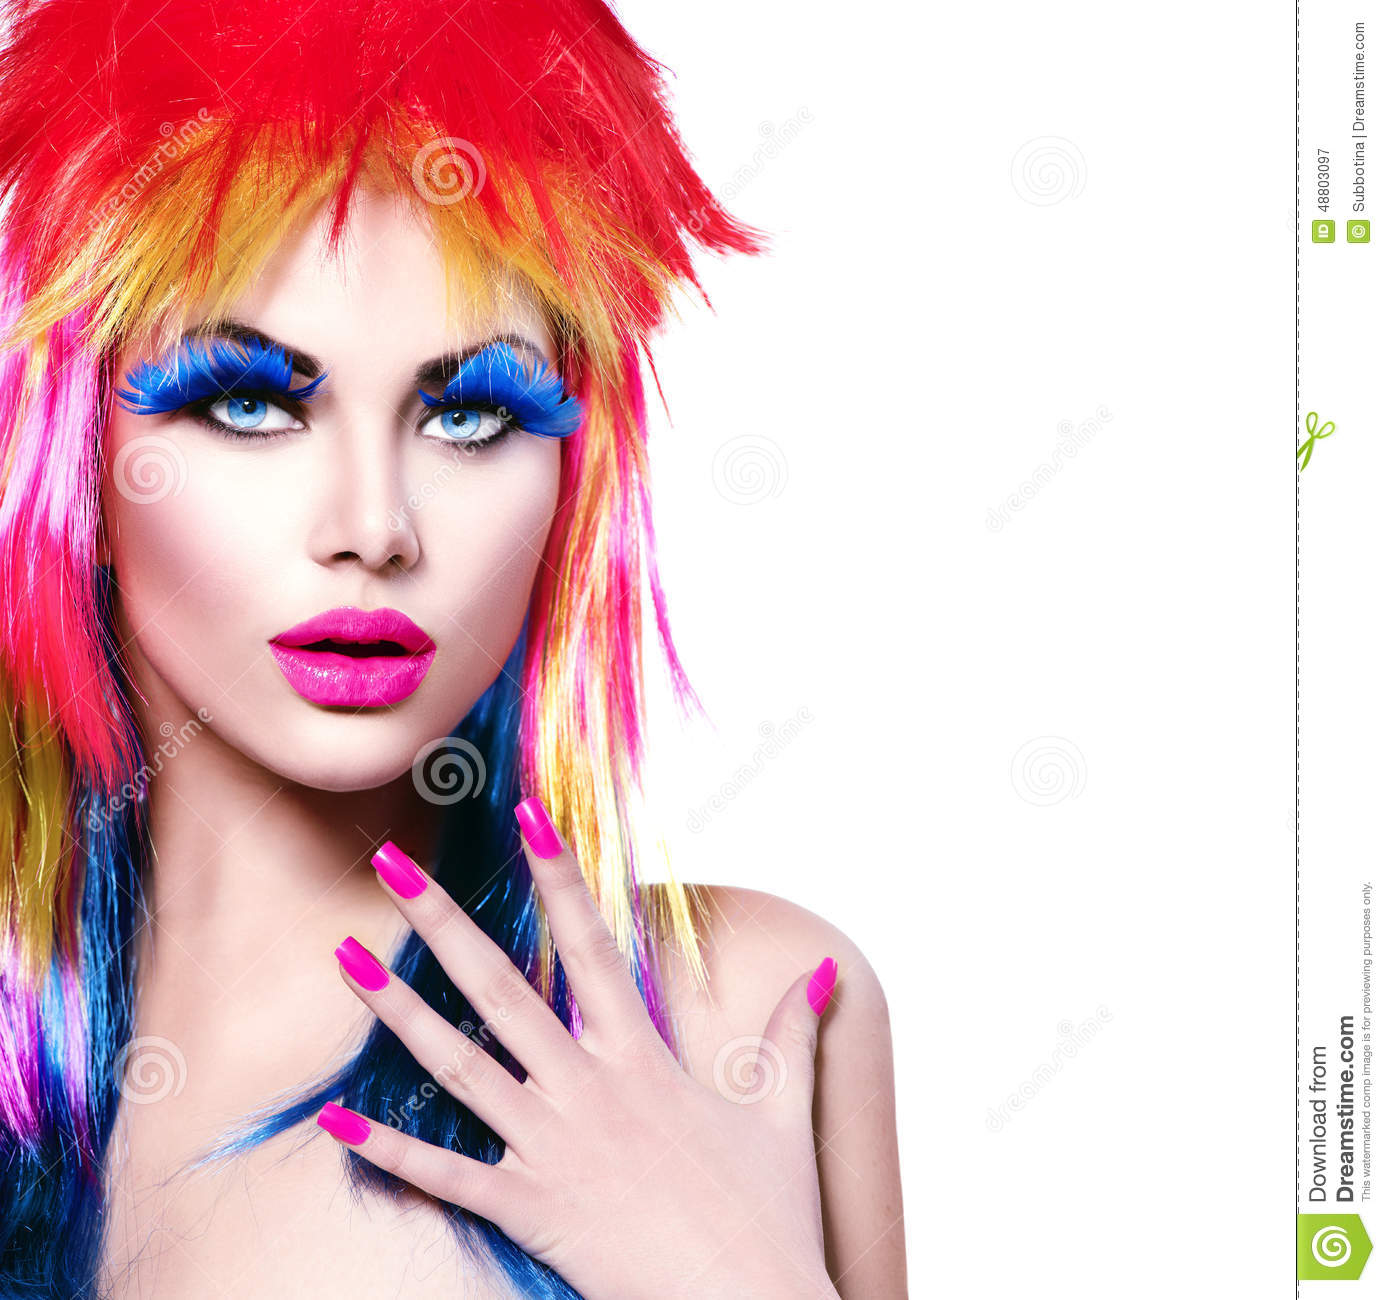 Punk model girl with colorful dyed hair